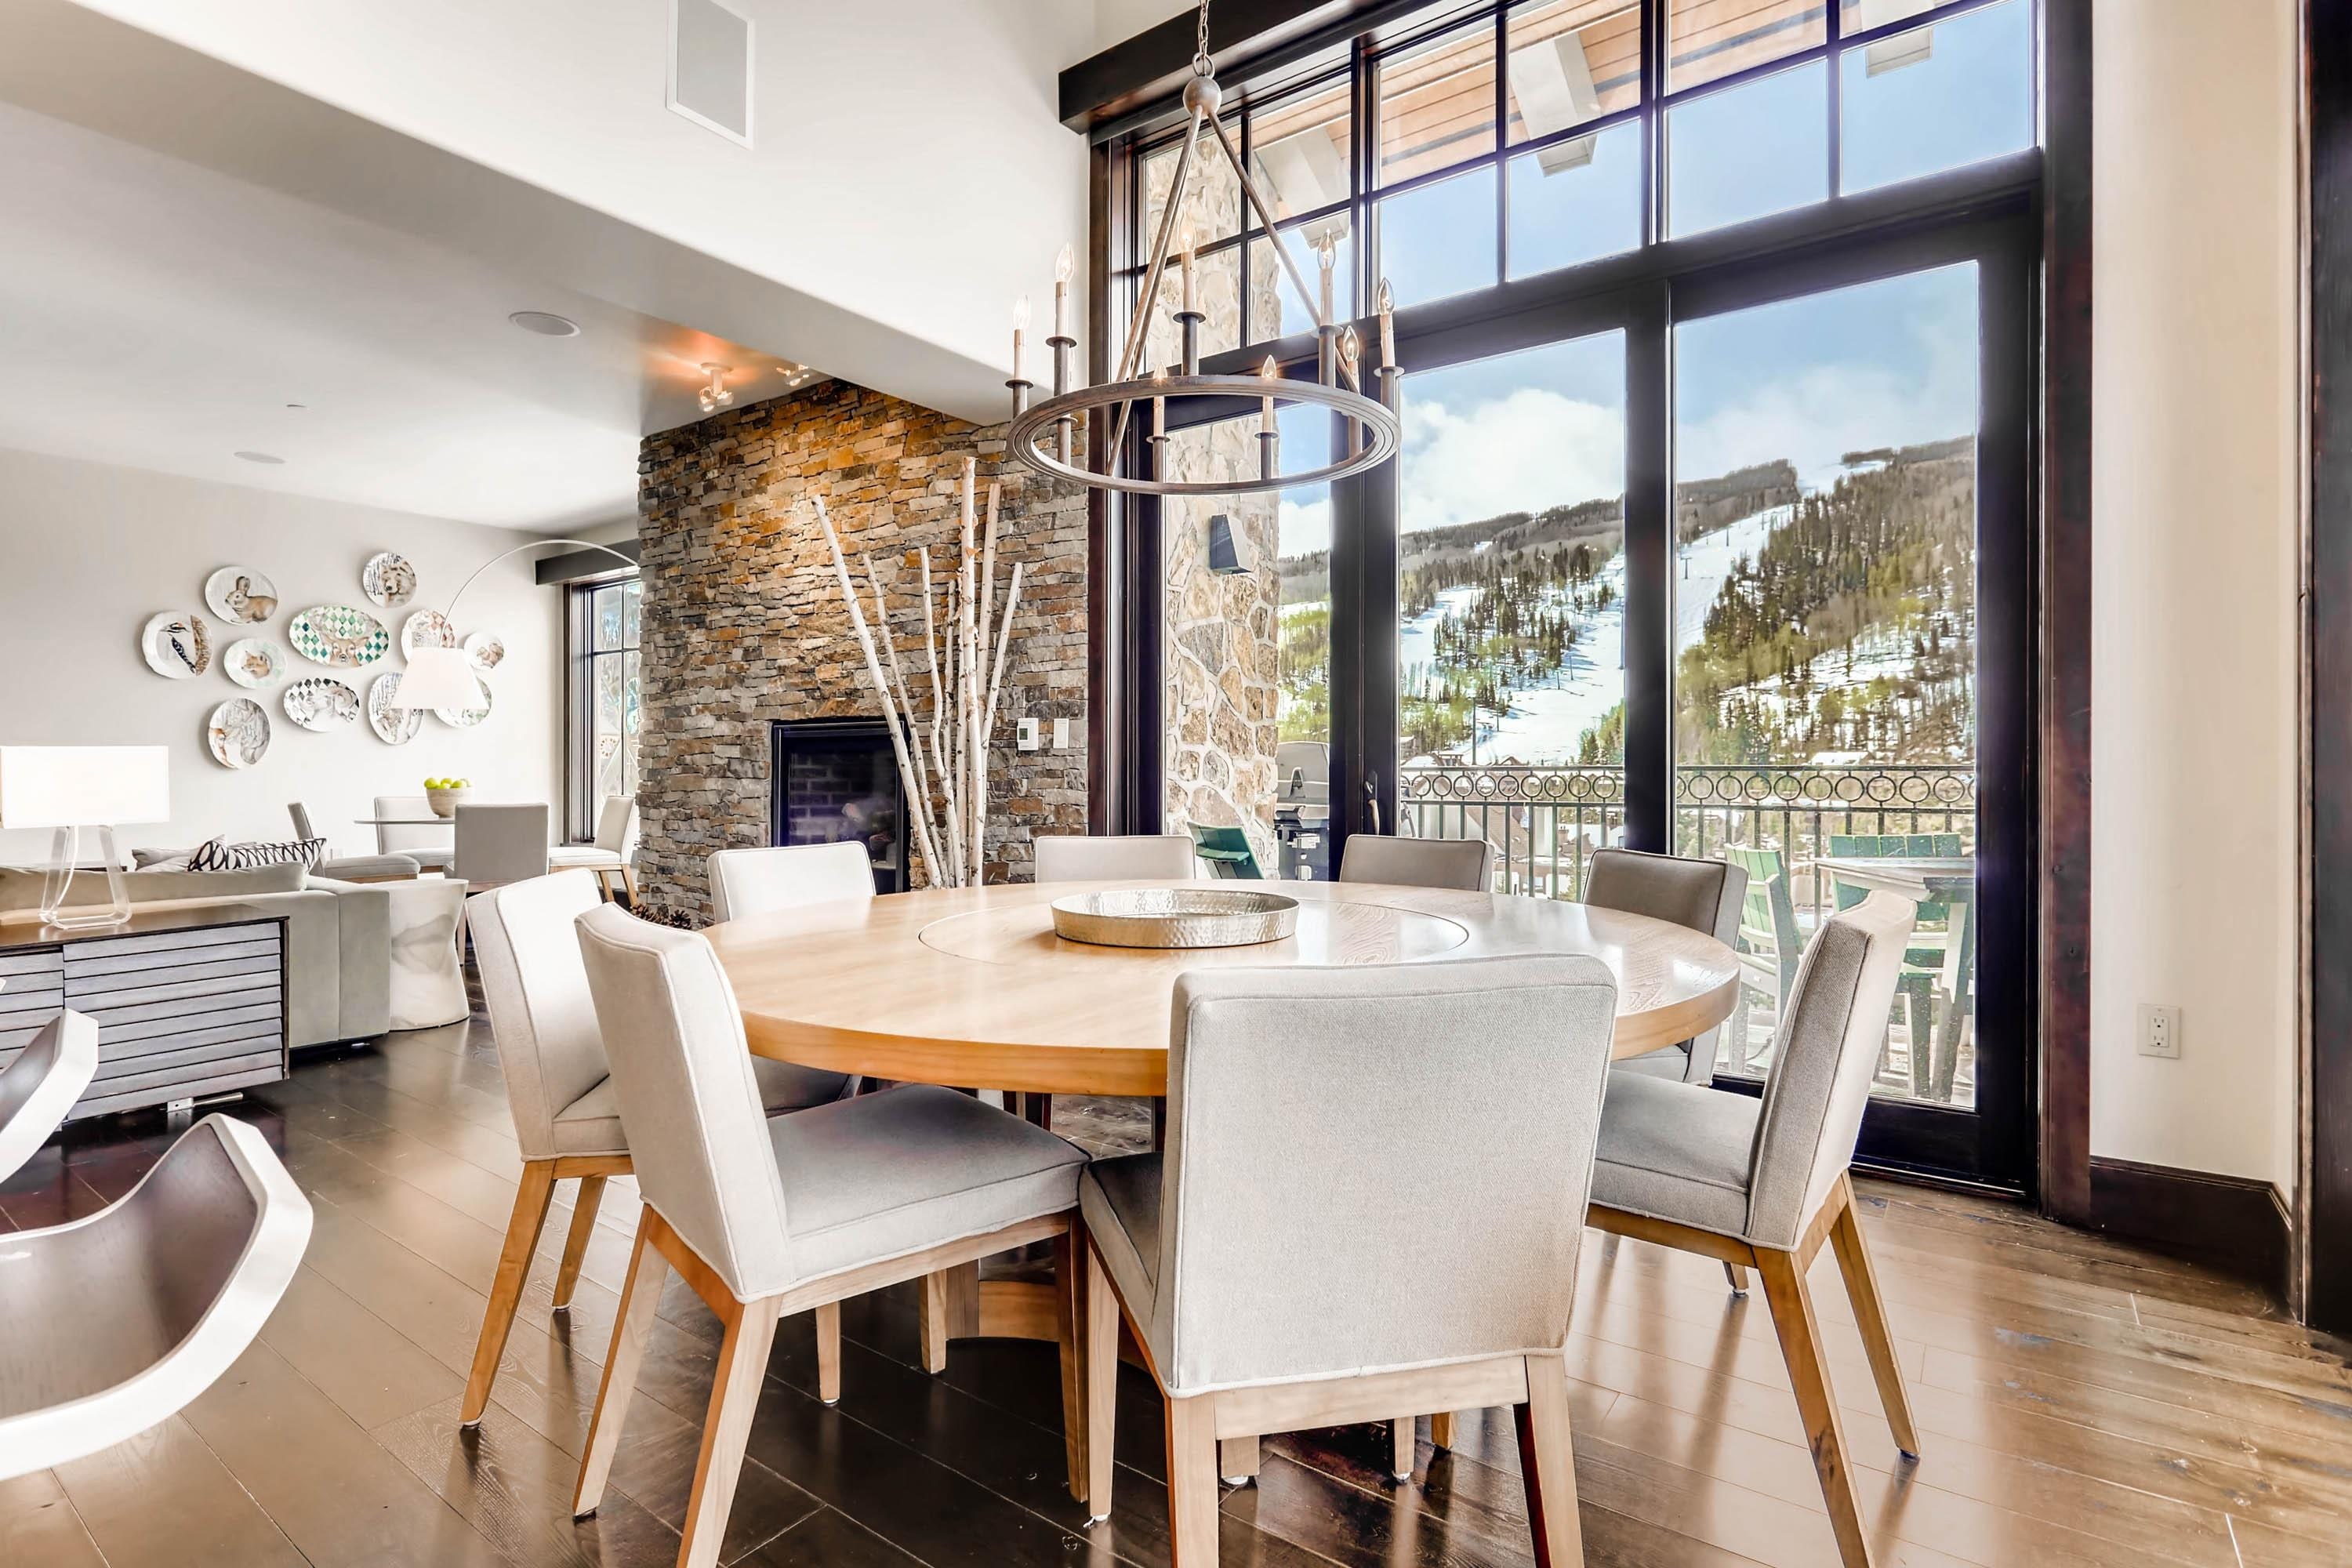 Welcome to Vail! This stunning condo is professionally managed by TurnKey Vacation Rentals. Gather for tasty meals in the sun-kissed dining area with seating for 8.